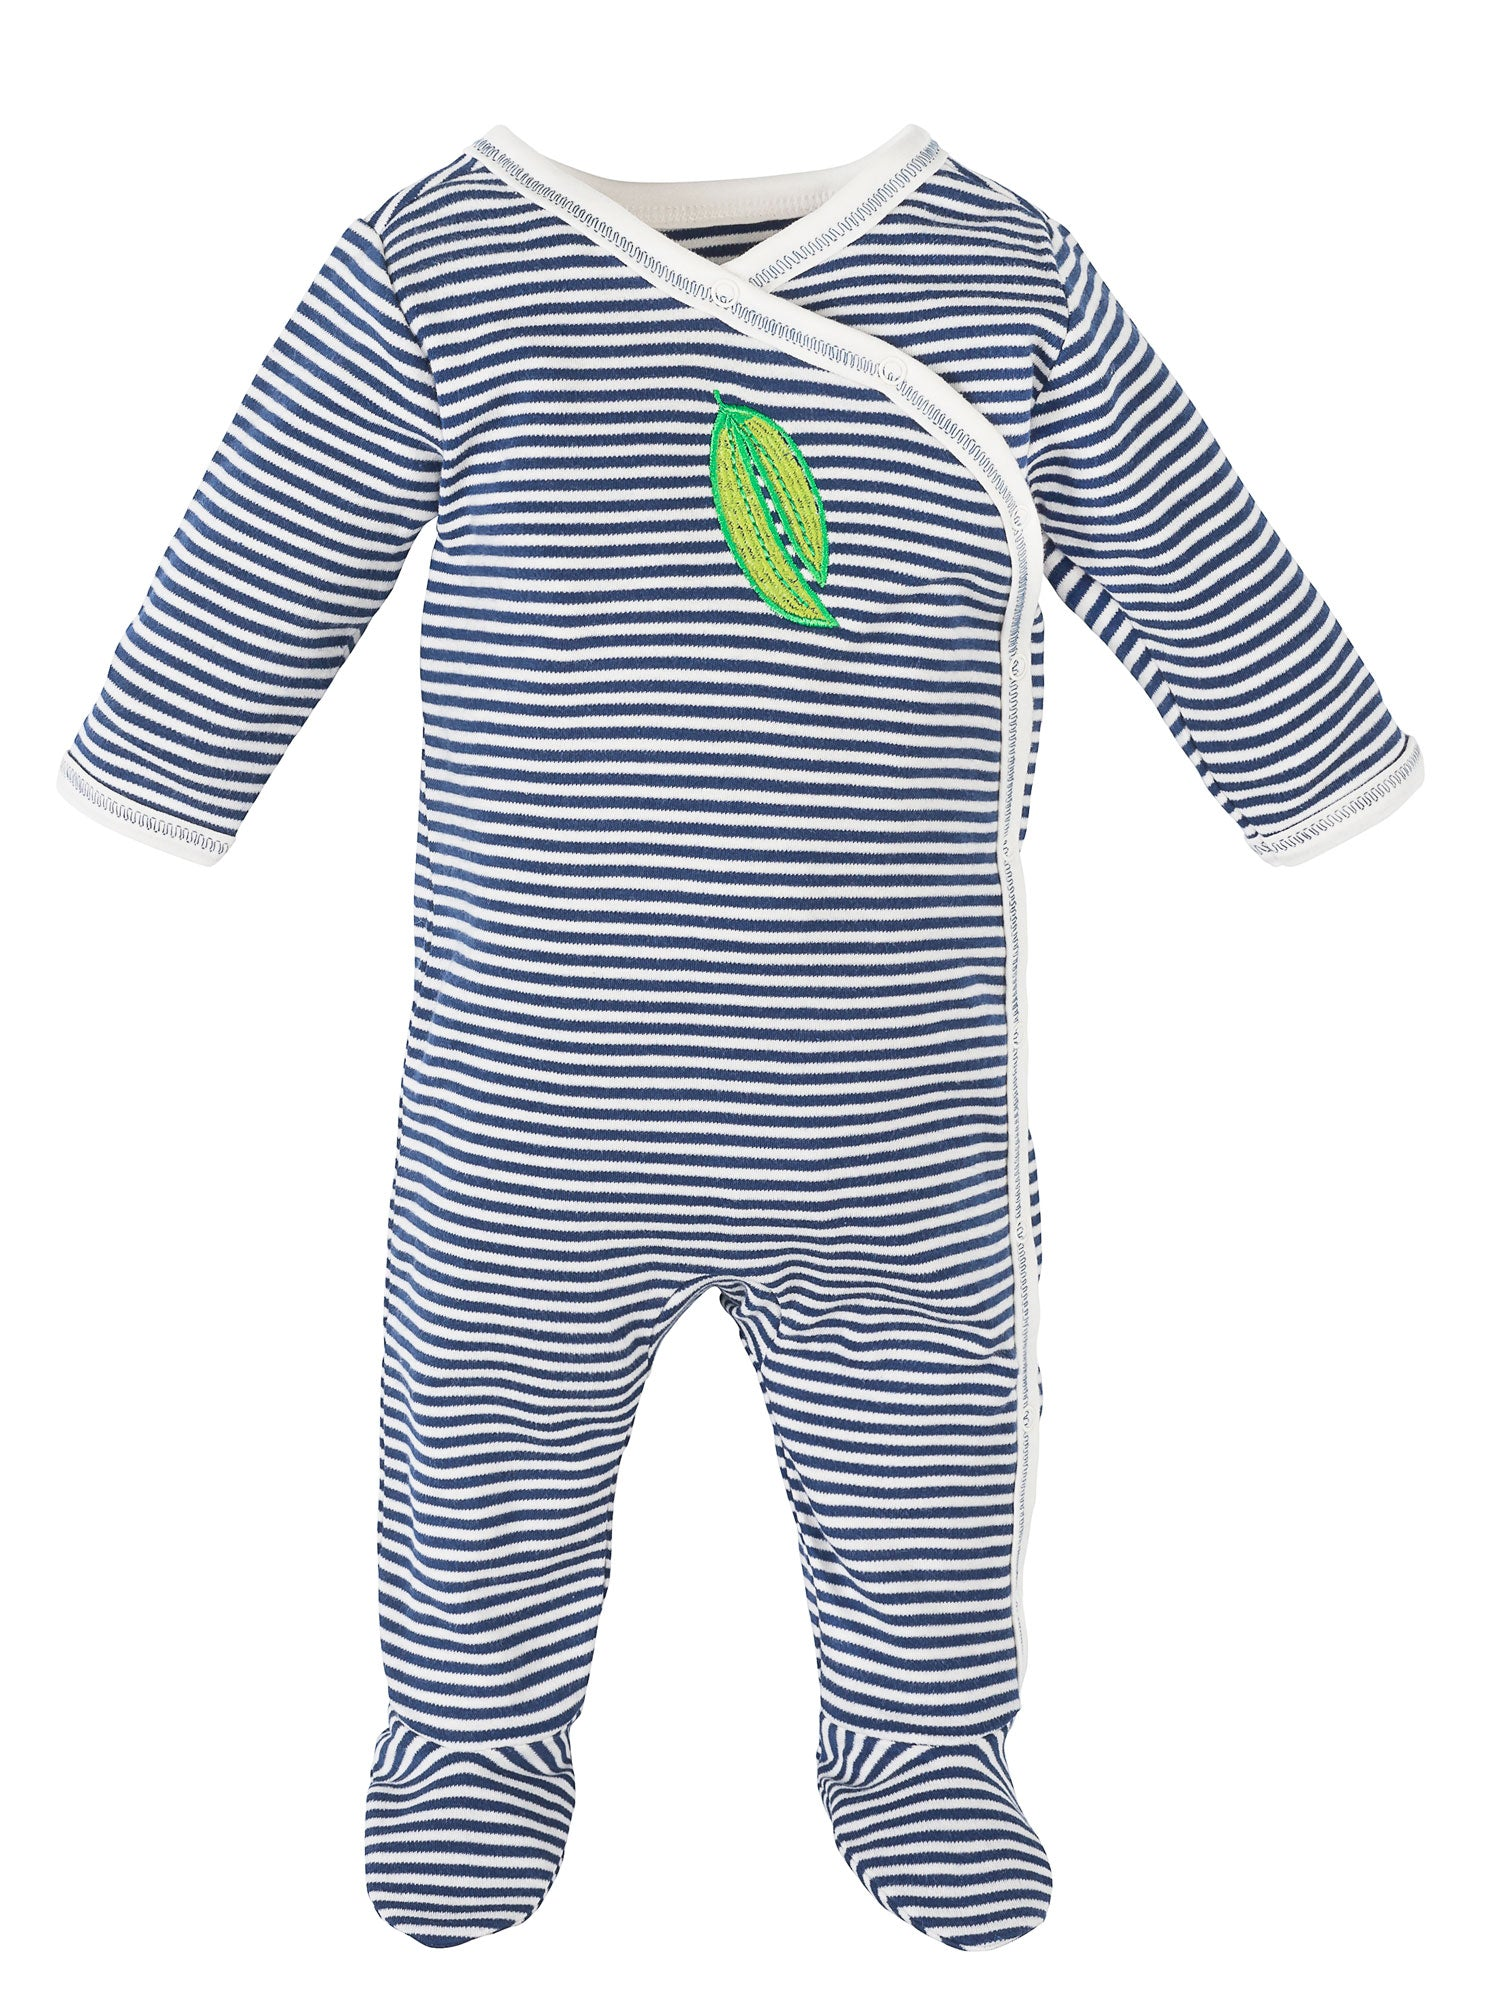 organic-cotton-baby-side-snap-footie-onesie-stripe-veggie-print-navy-lifestyle